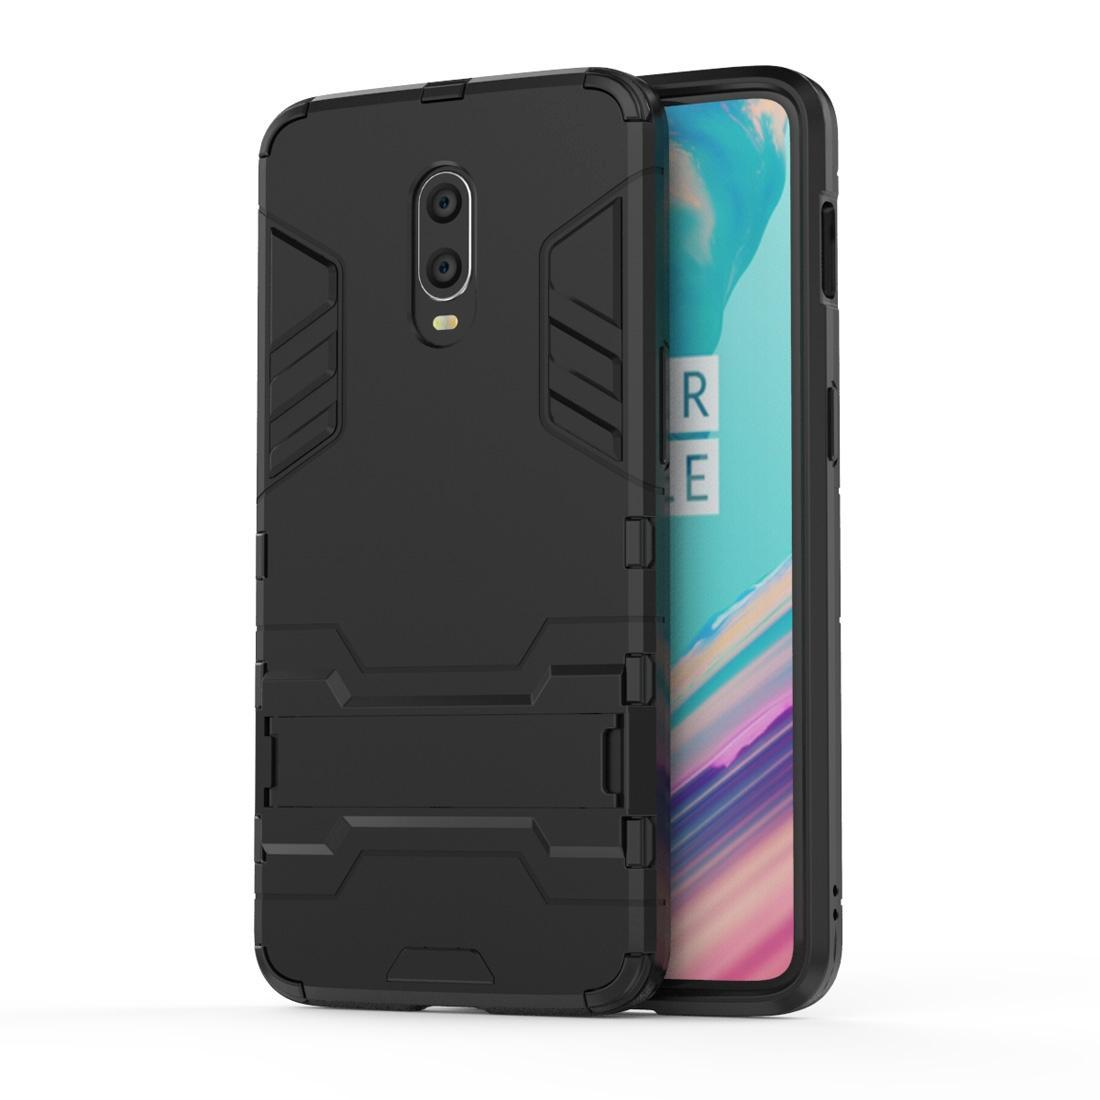 Shockproof PC + TPU Case for OnePlus 6T, with Holder